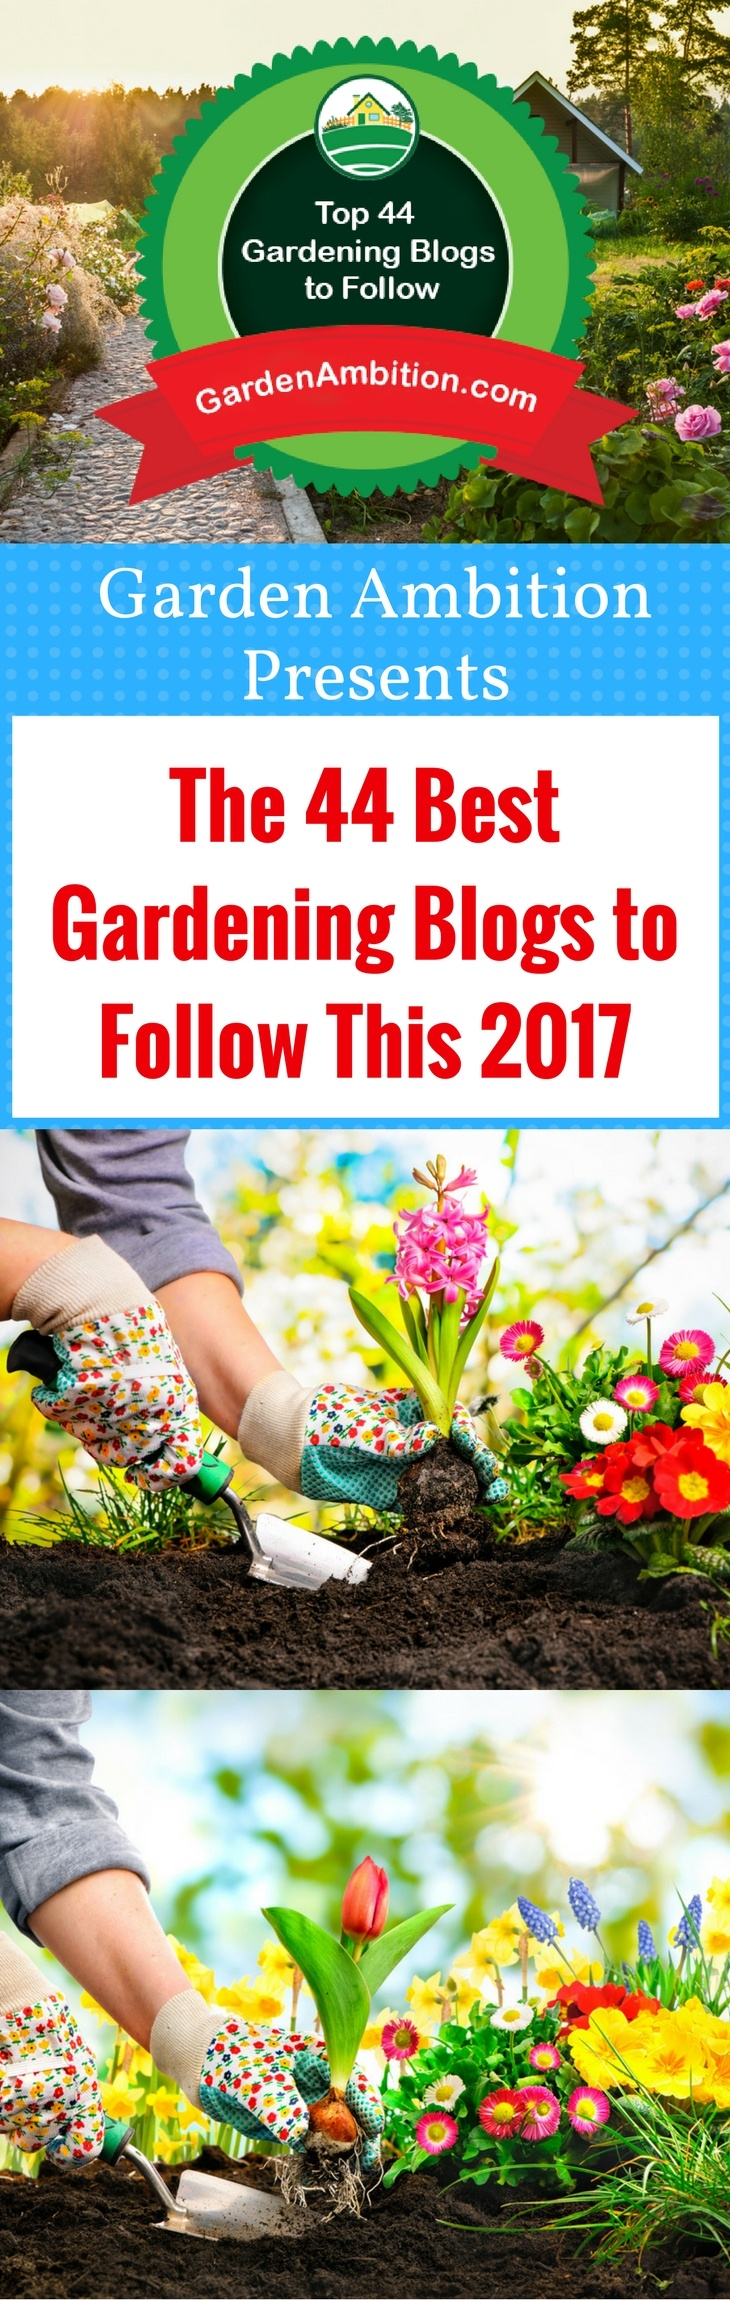 The 44 Best Gardening Blogs To Follow This 2017